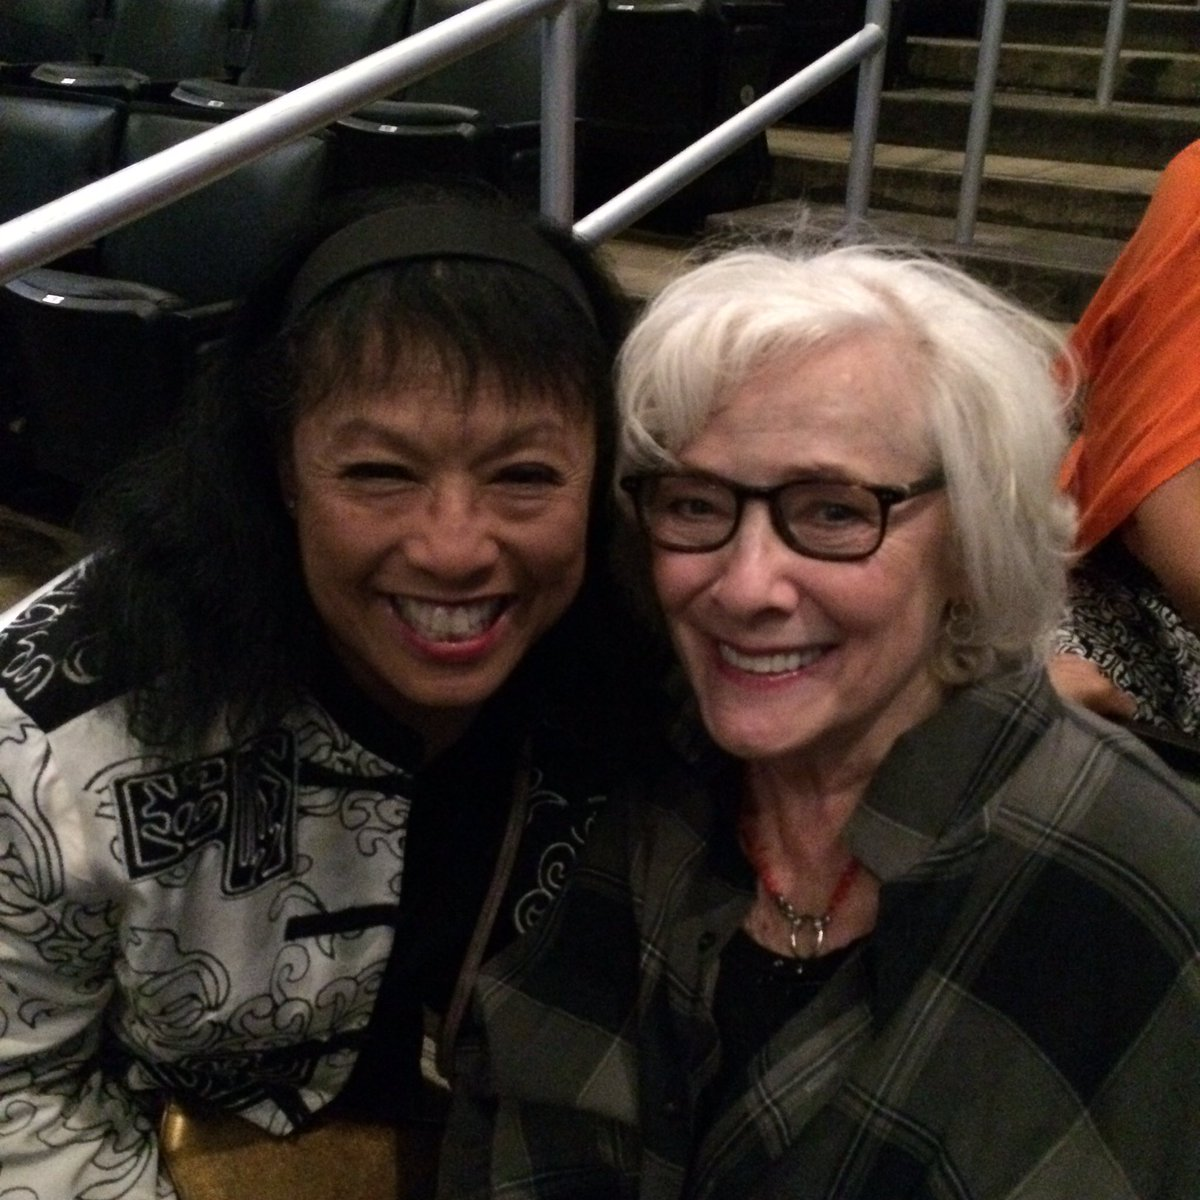 "It's a ""Promises, Promises"" reunion at @STAPLESCenter: @baayorklee and @BettyBuckley! -Here to see @BarbraStreisand! https://t.co/ni9nKpcCeq"